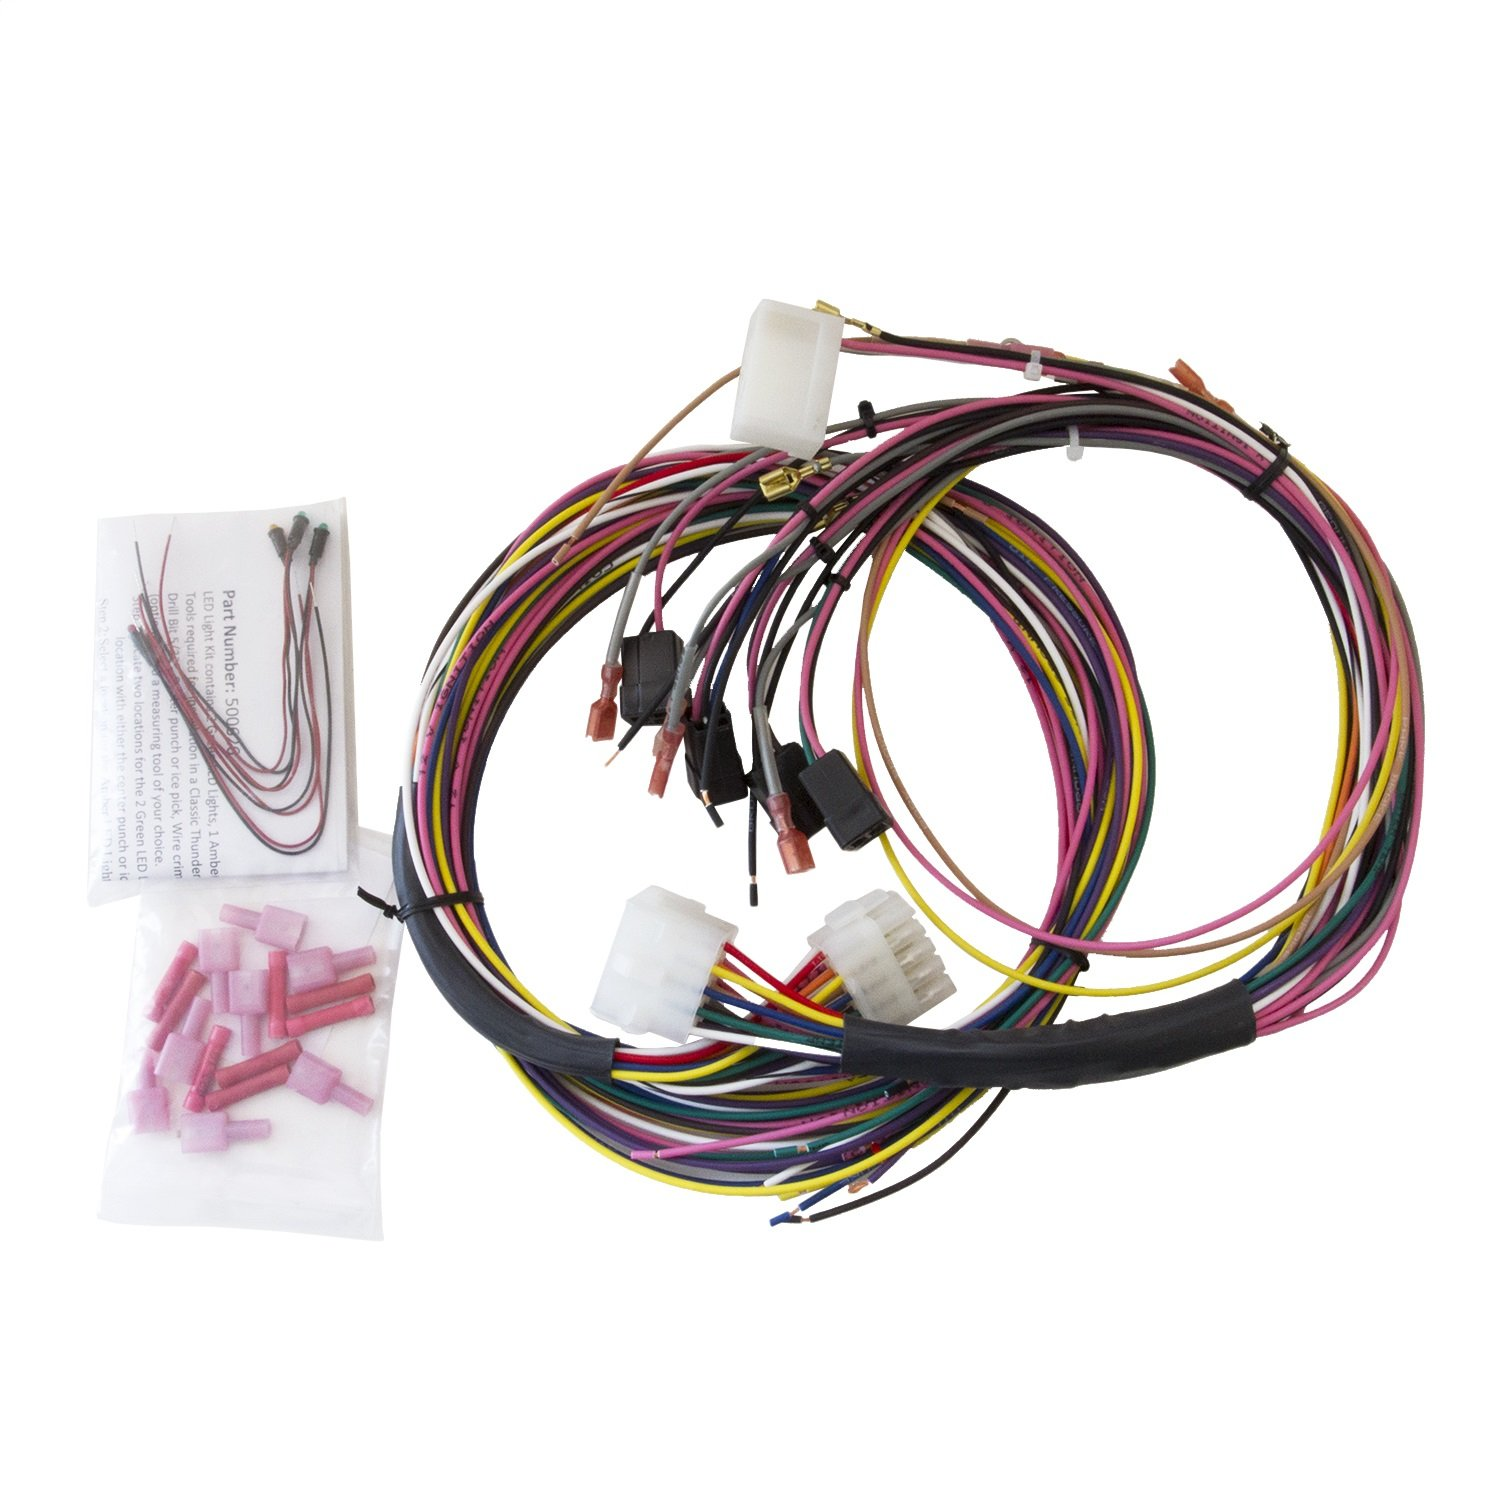 Psi Wiring Harness Tach Wire on wire harness connectors, wire harness assembly, wire harness repair, wire harness fasteners, wire harness testing, wire harness tubing,